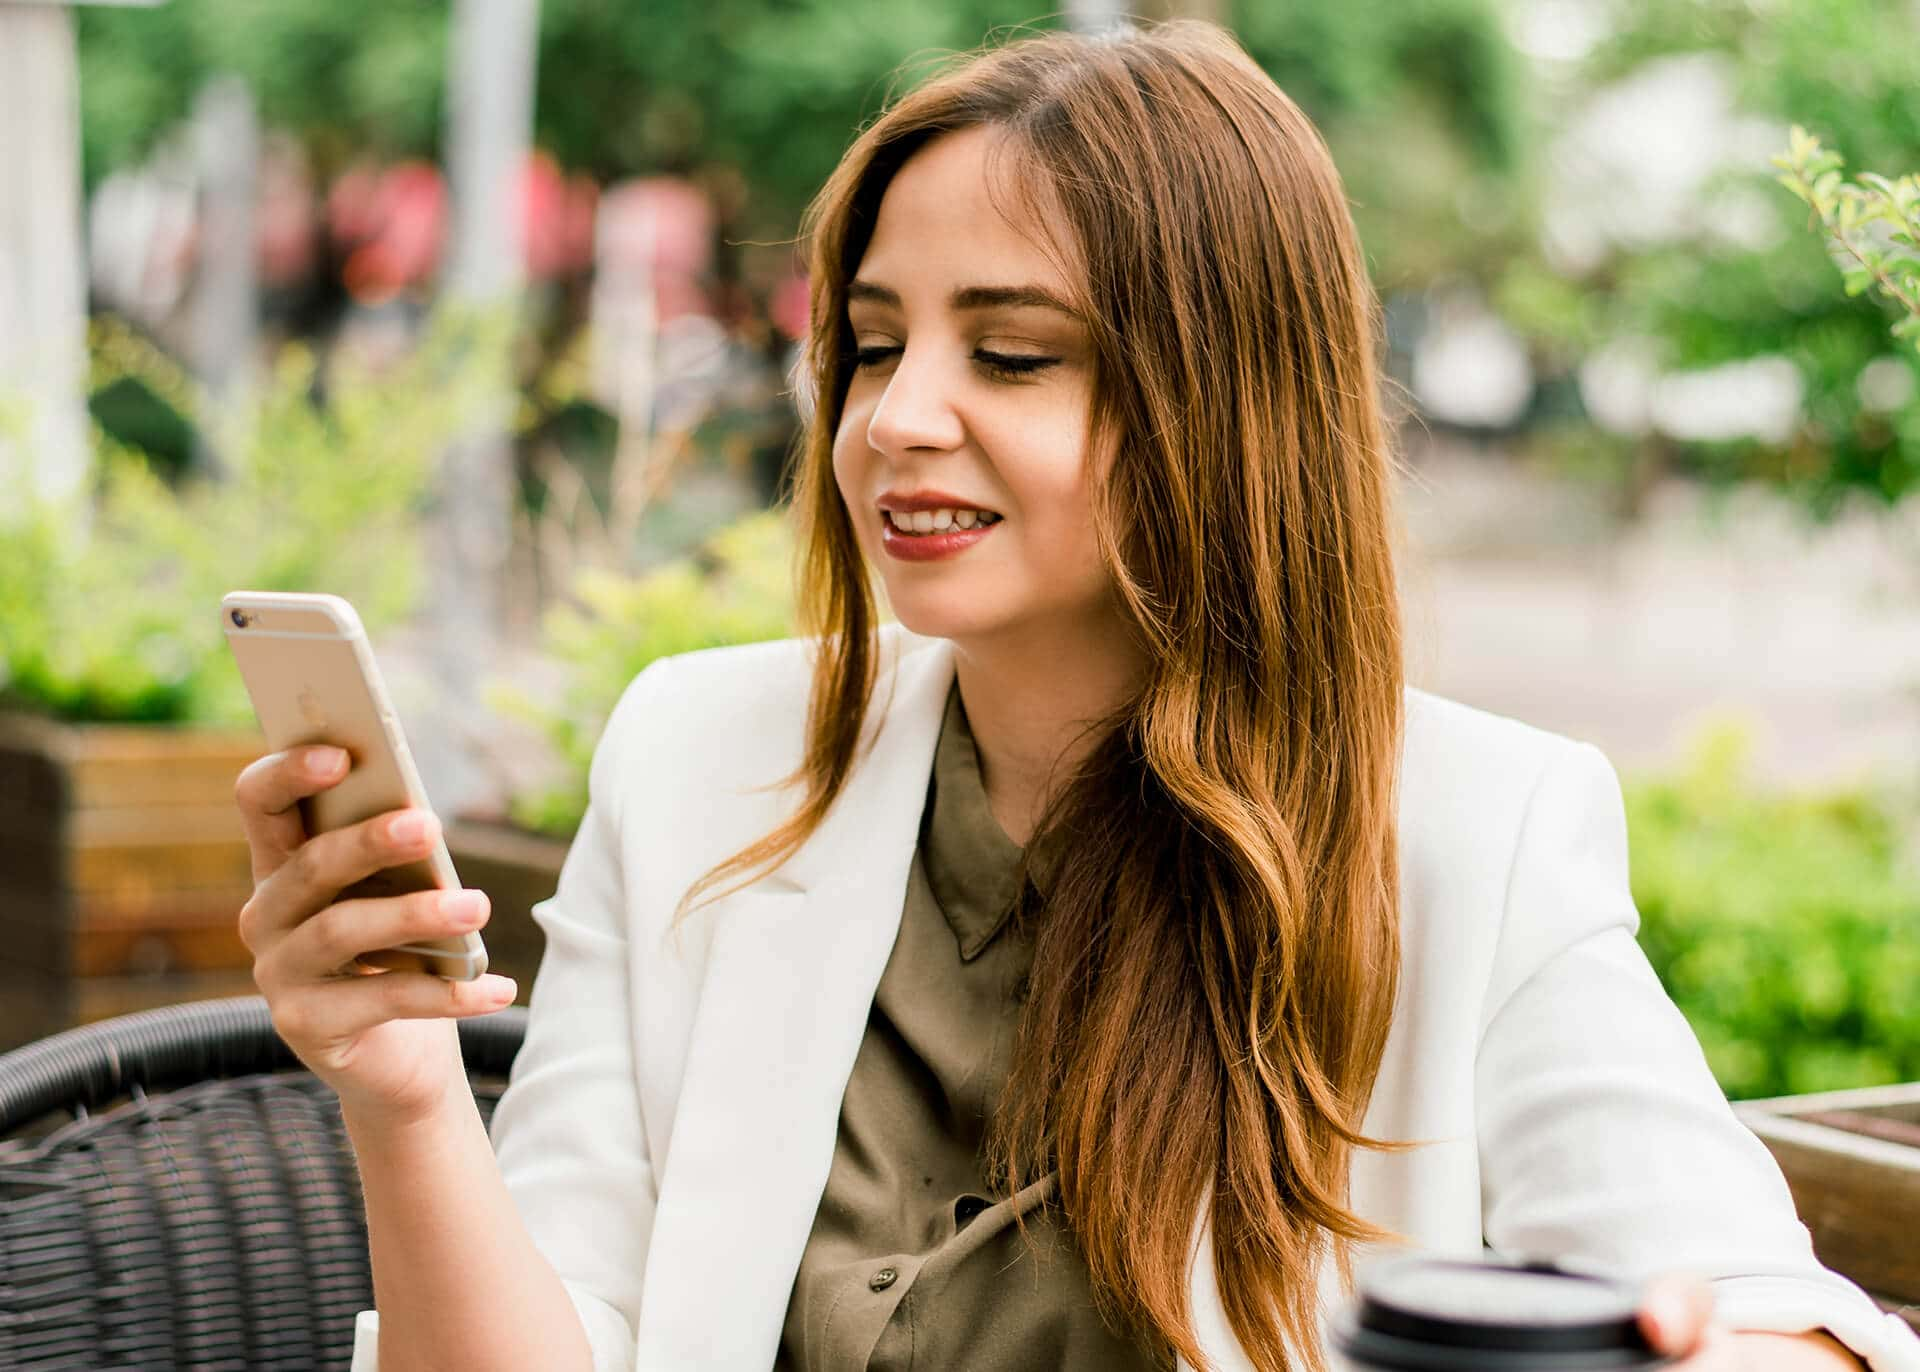 woman reading text message frowning